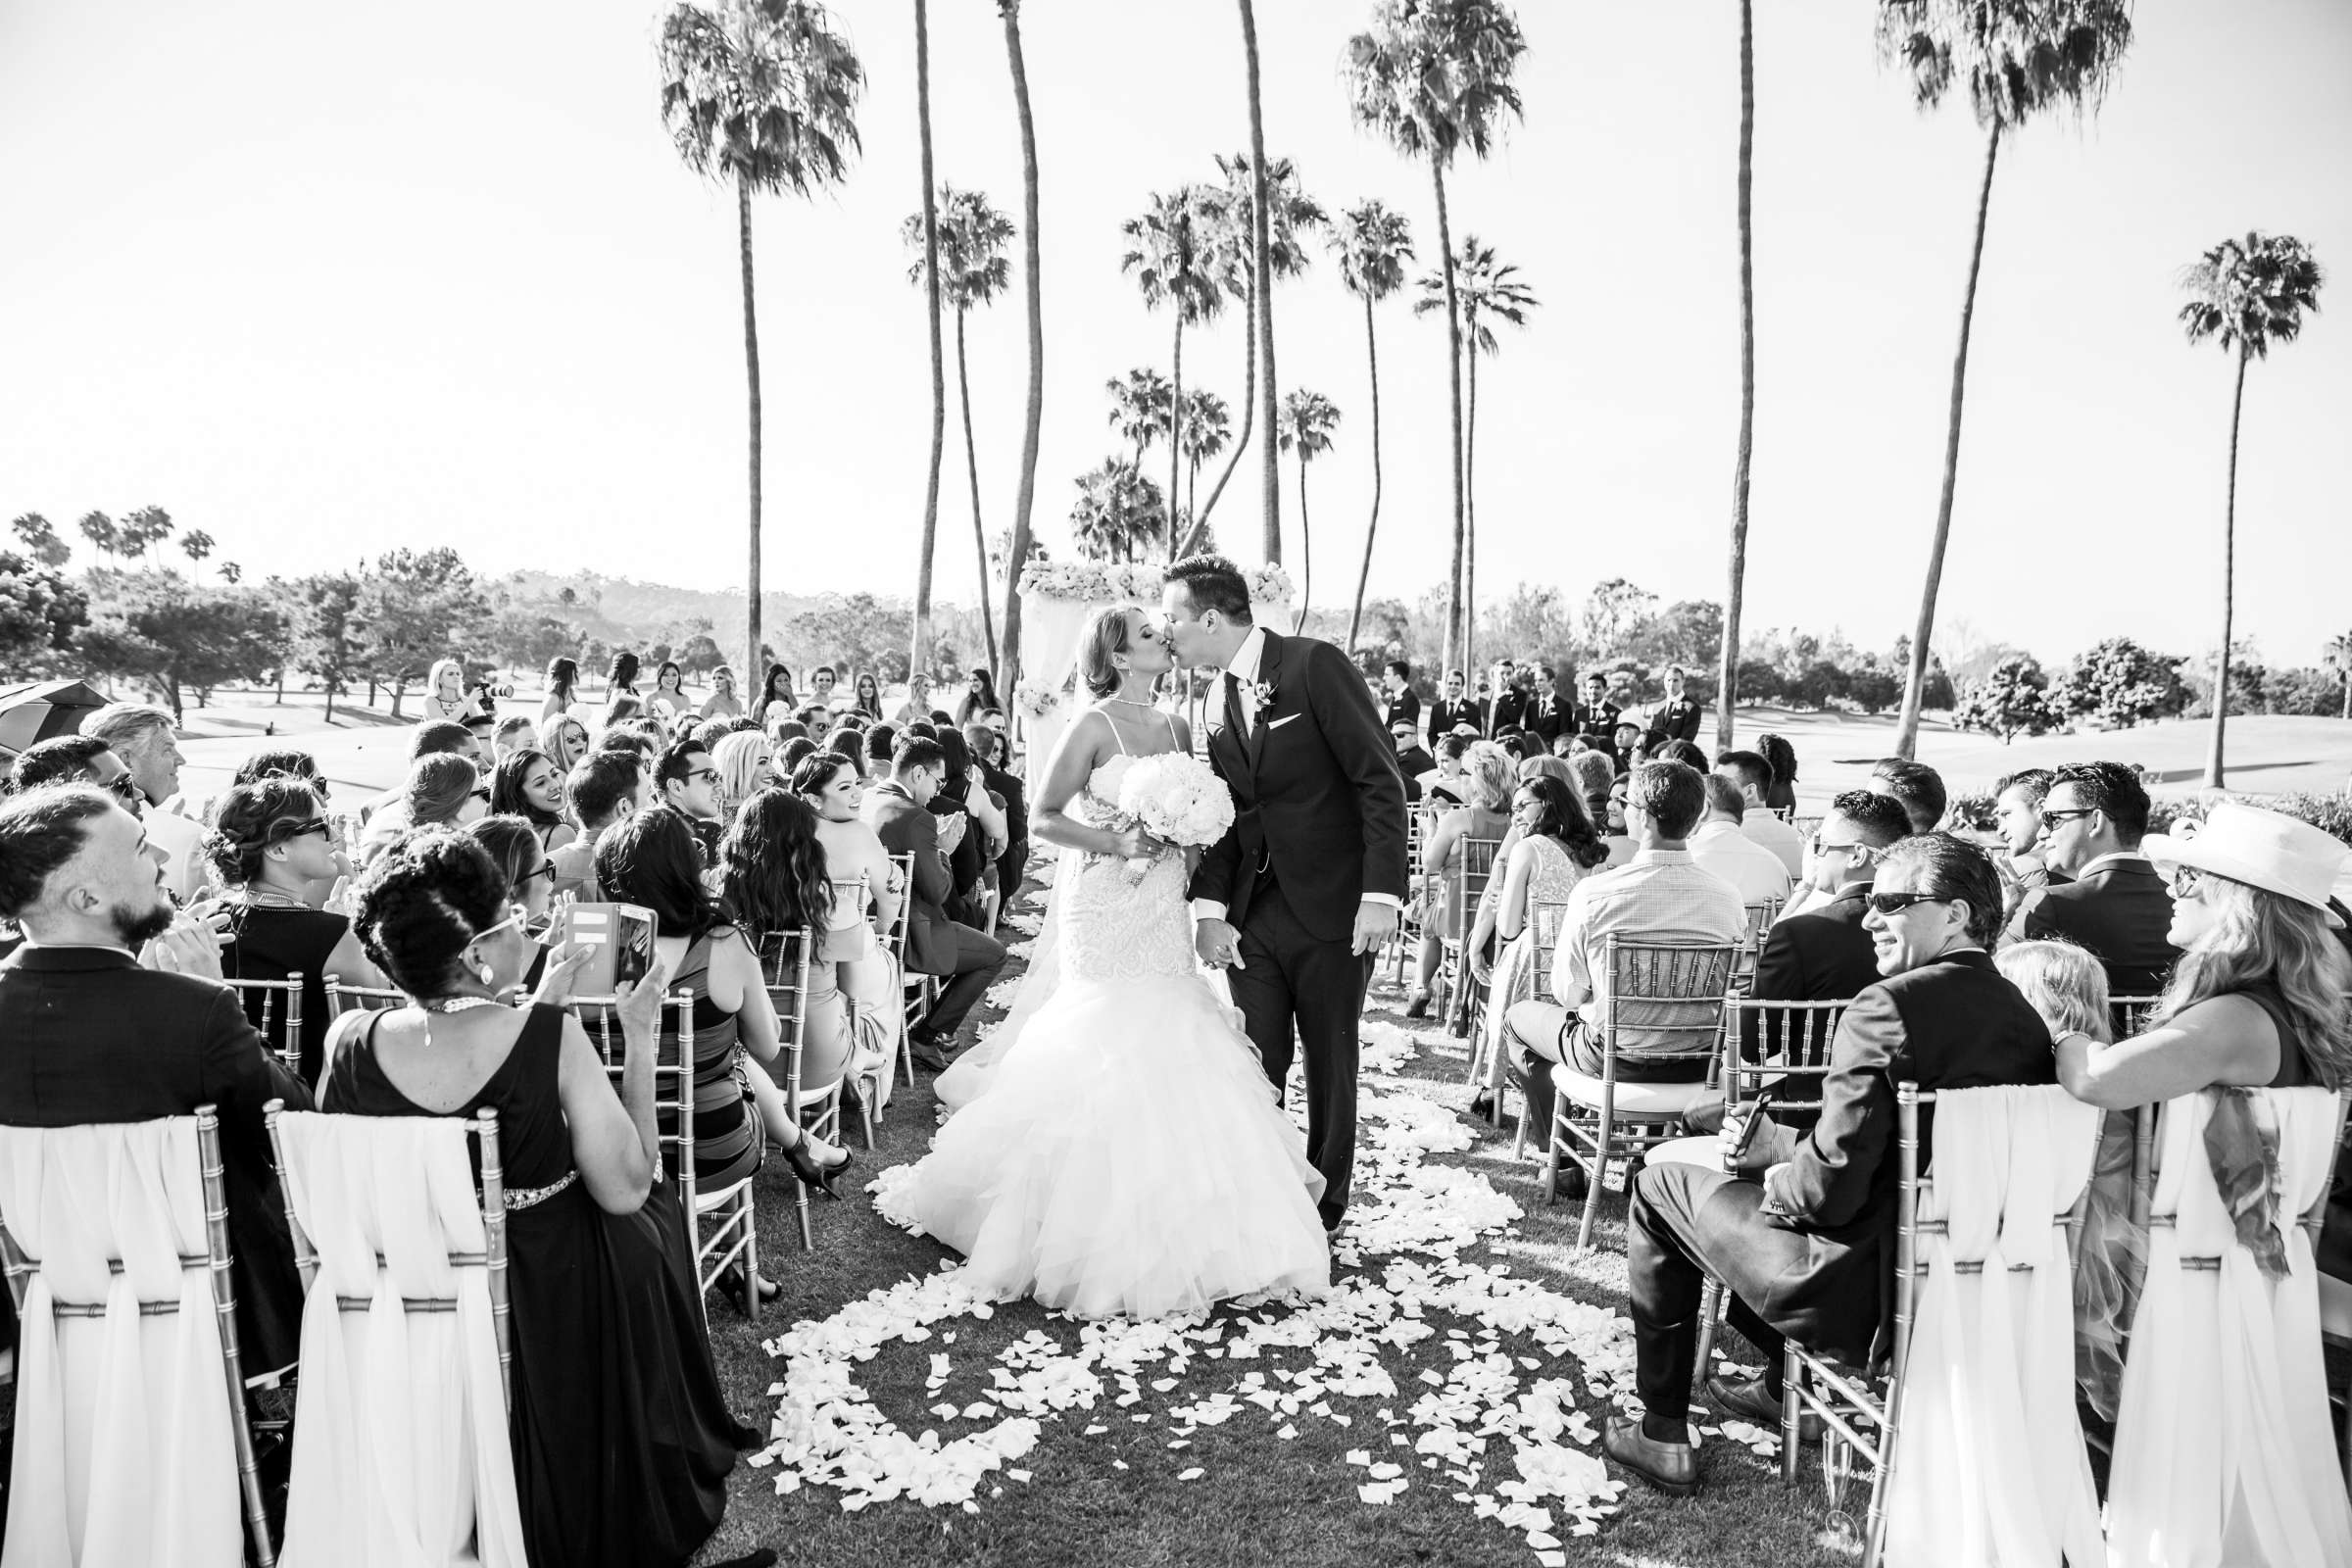 Fairbanks Ranch Country Club Wedding coordinated by Monarch Weddings, Gabriella and Kyle Wedding Photo #97 by True Photography